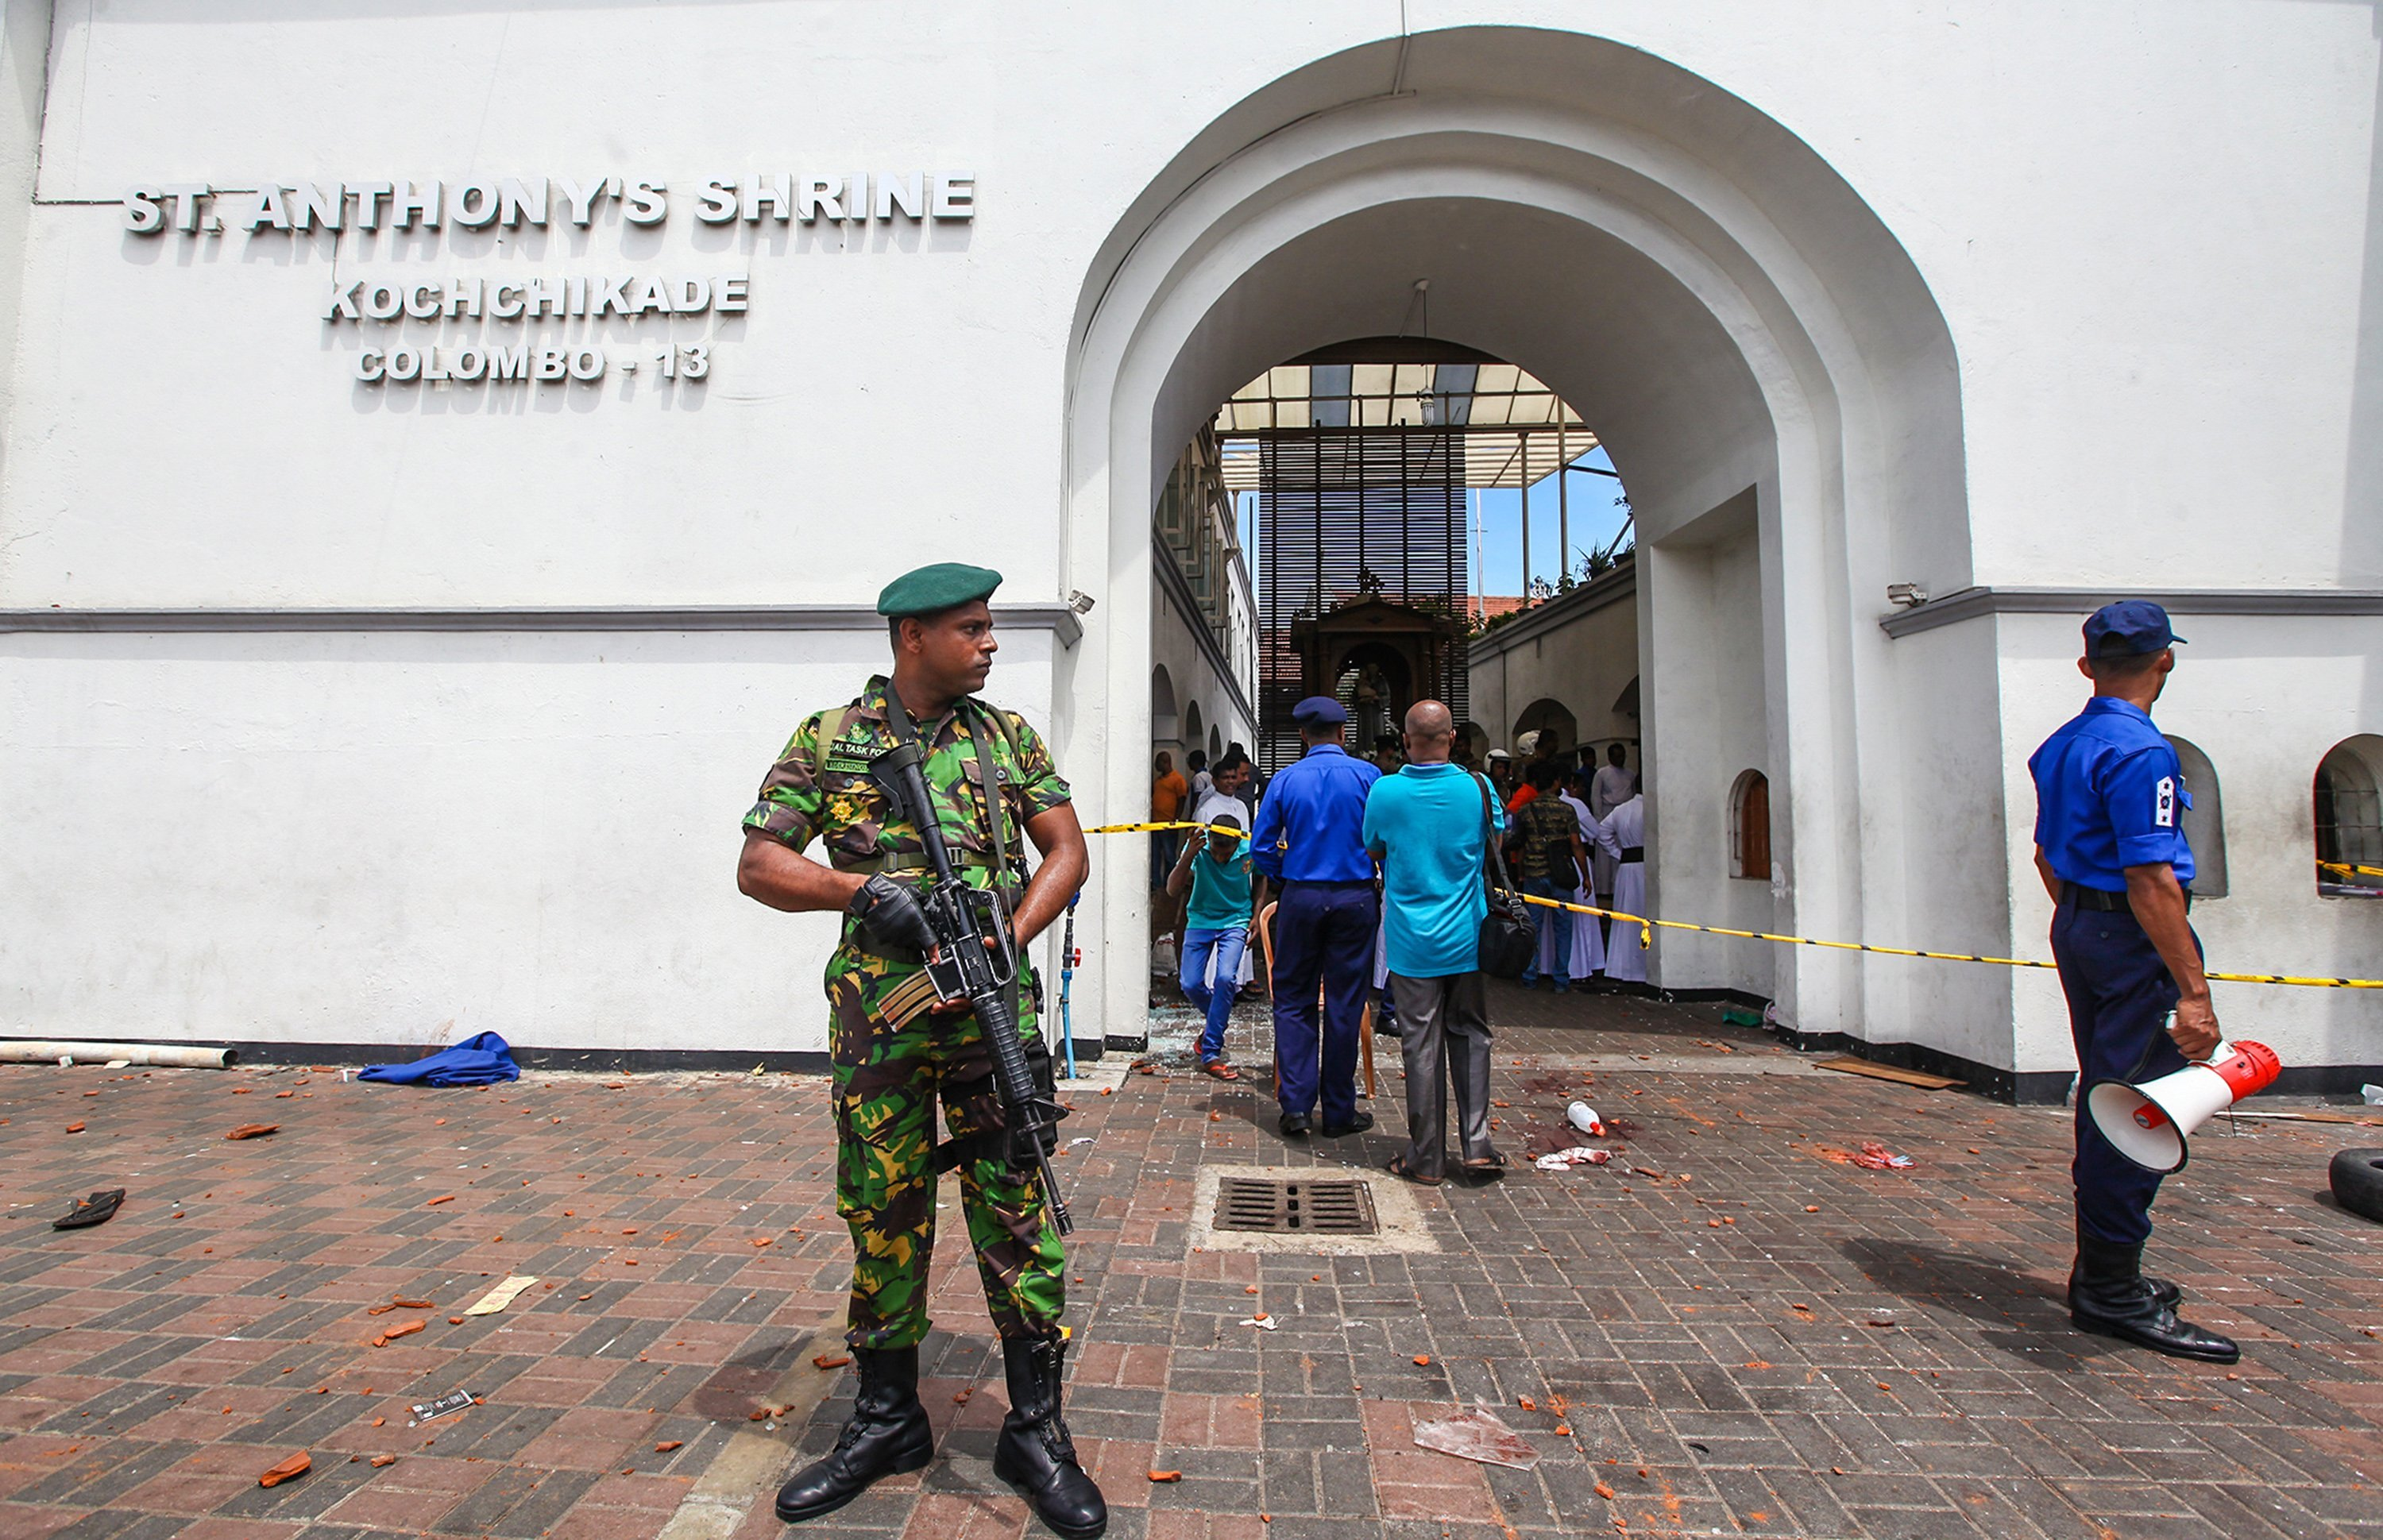 Military forces securing the area around St. Anthony's Shrine after an explosion in St Anthony's Church, in Kochchikade, Sri Lanka | Photo: Getty Images